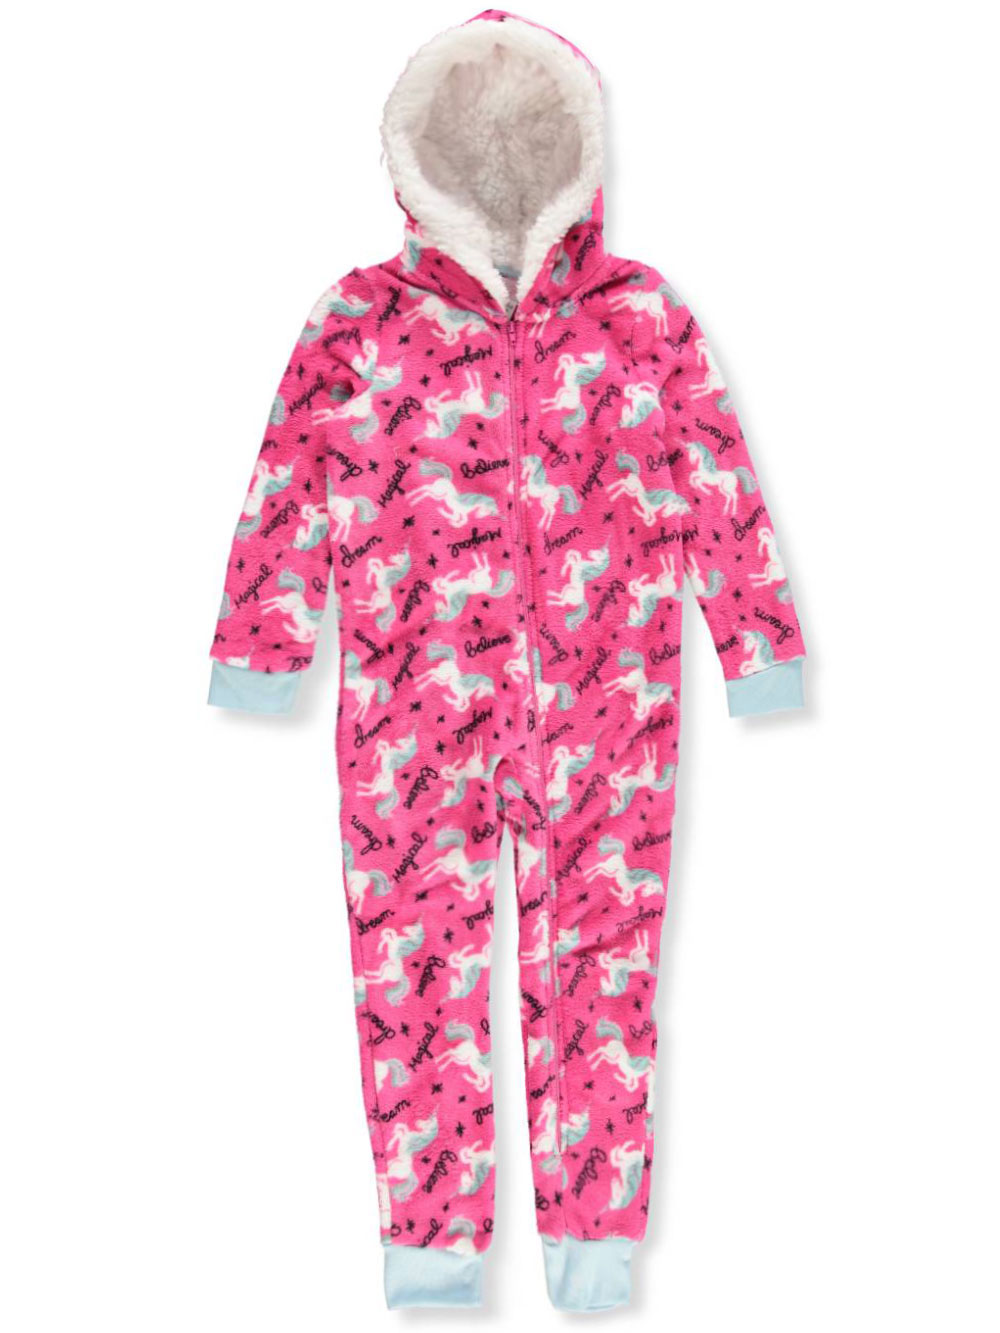 Girls' 1-Piece Hooded Pajamas